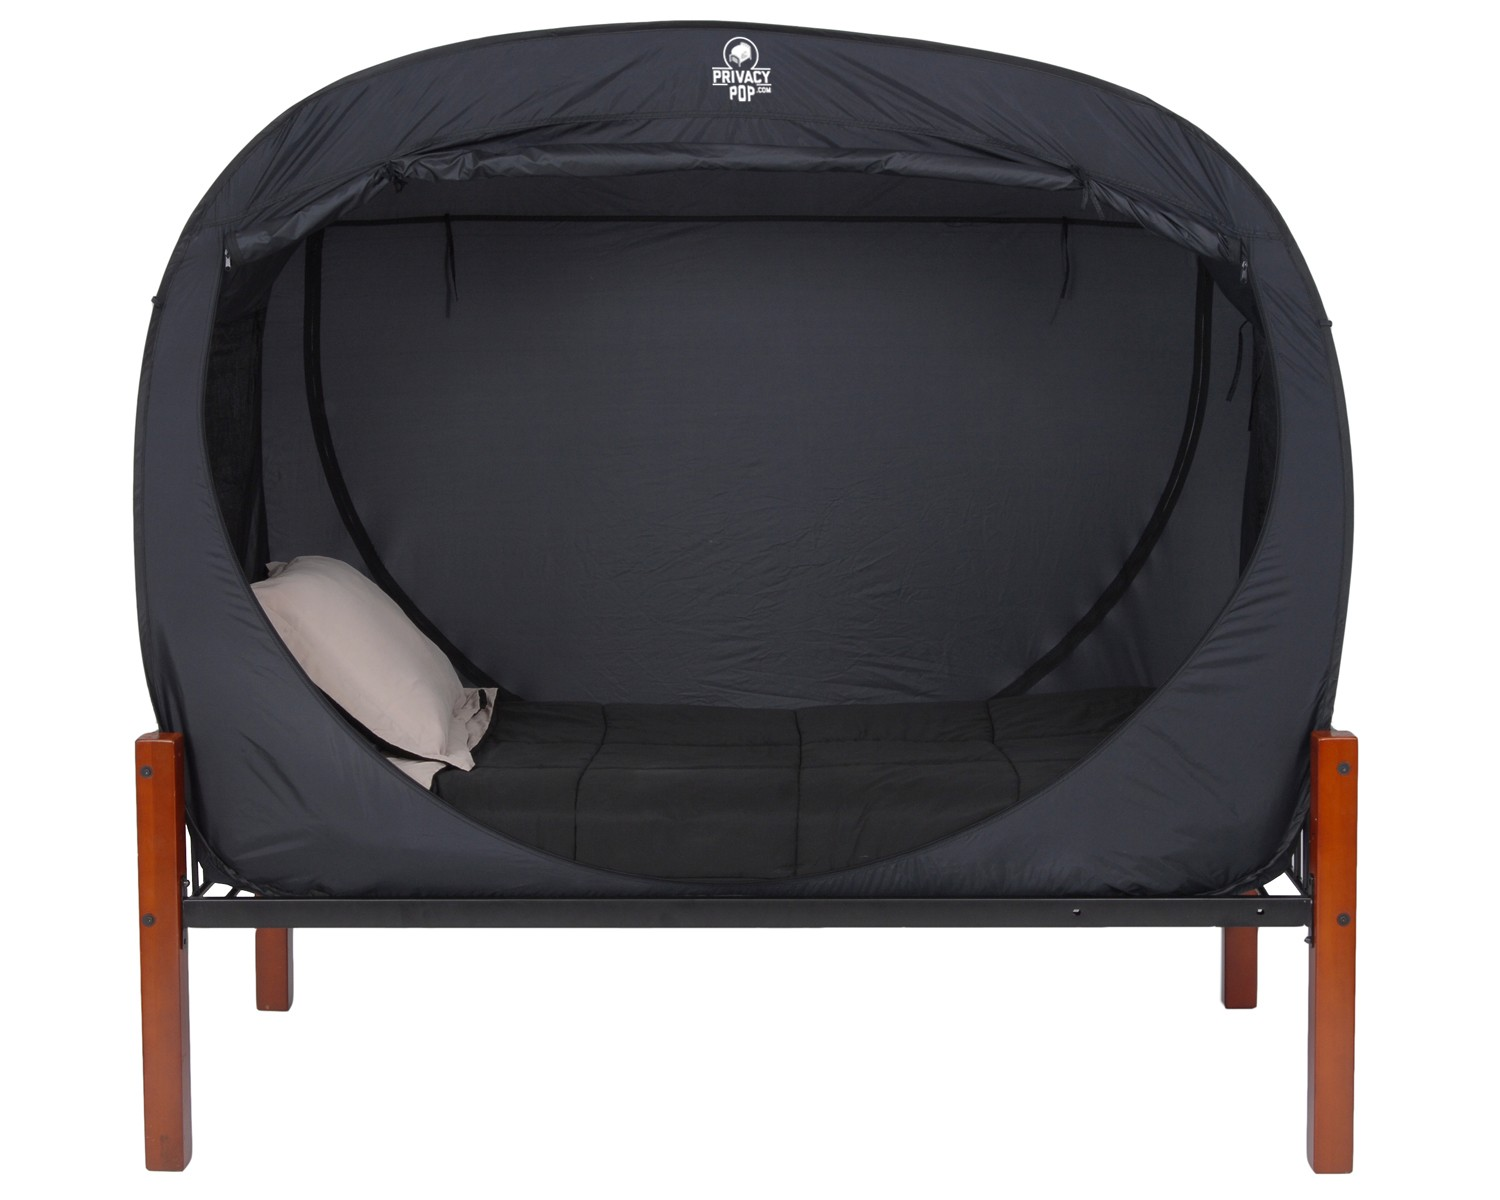 Outdoor Bed With Canopy Privacy Pop Is A Tent For Your Bed